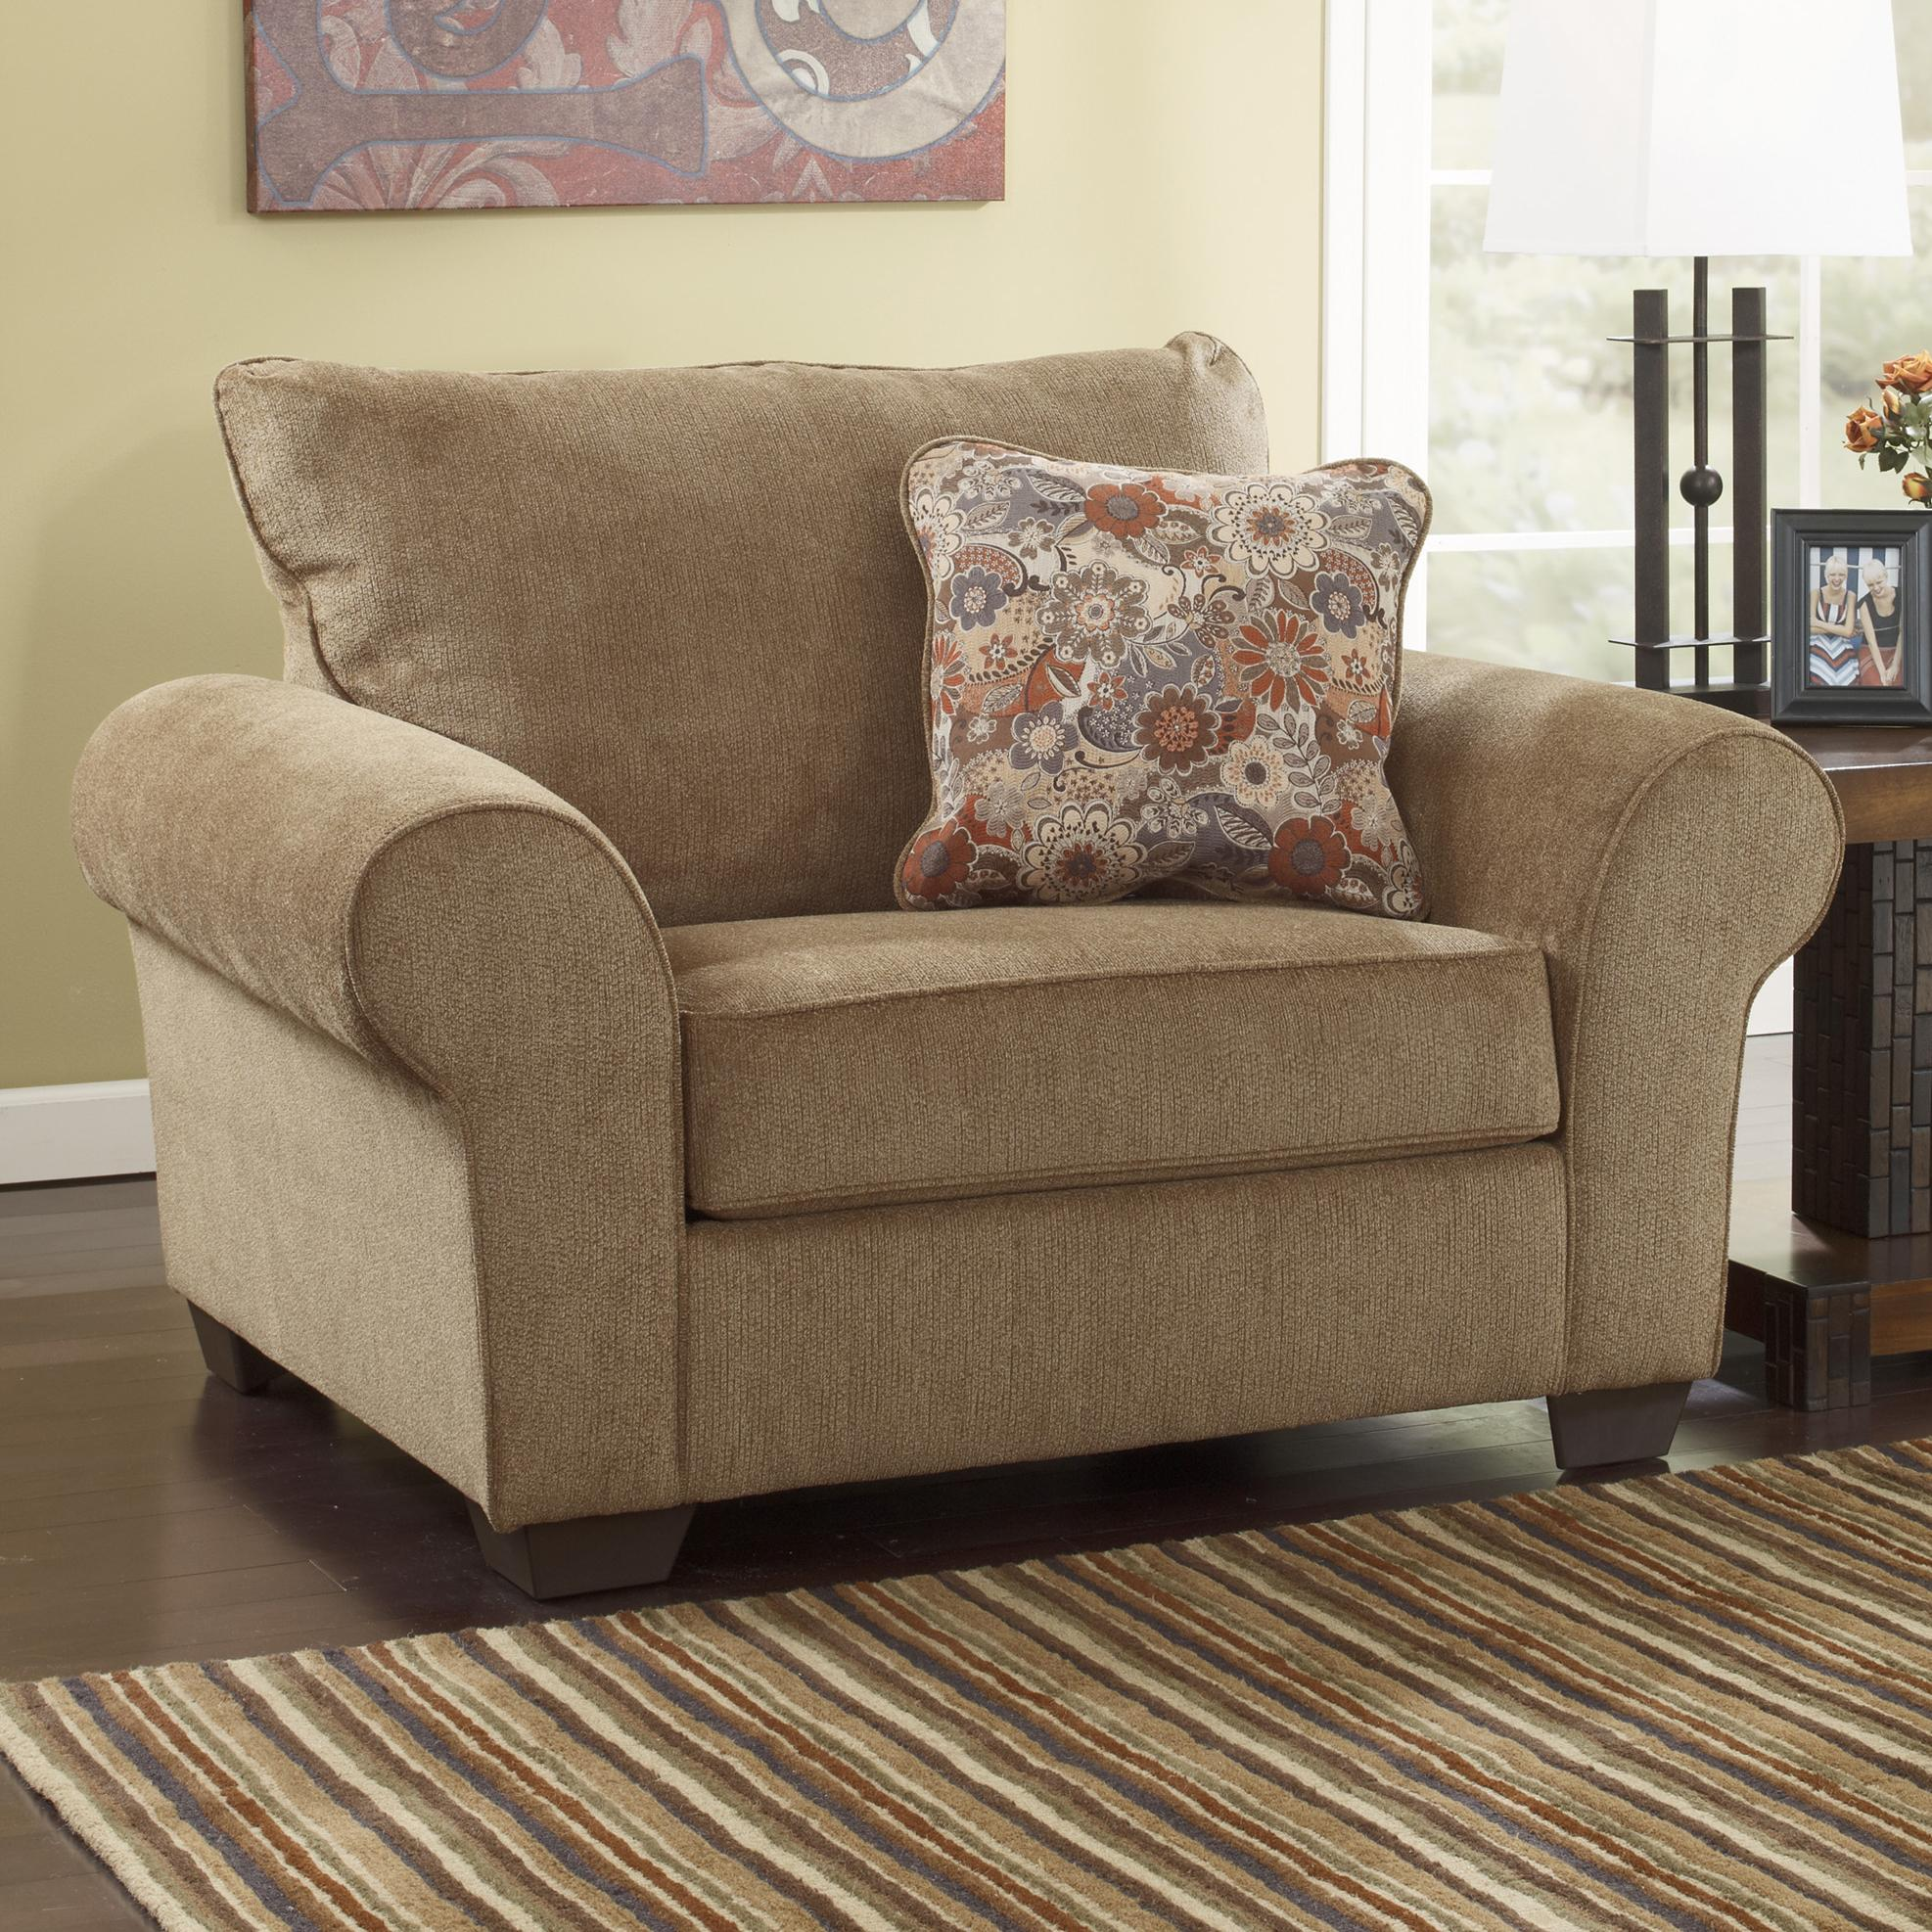 Ashley Furniture Galand - Umber Chair and a Half - Item Number: 1170023